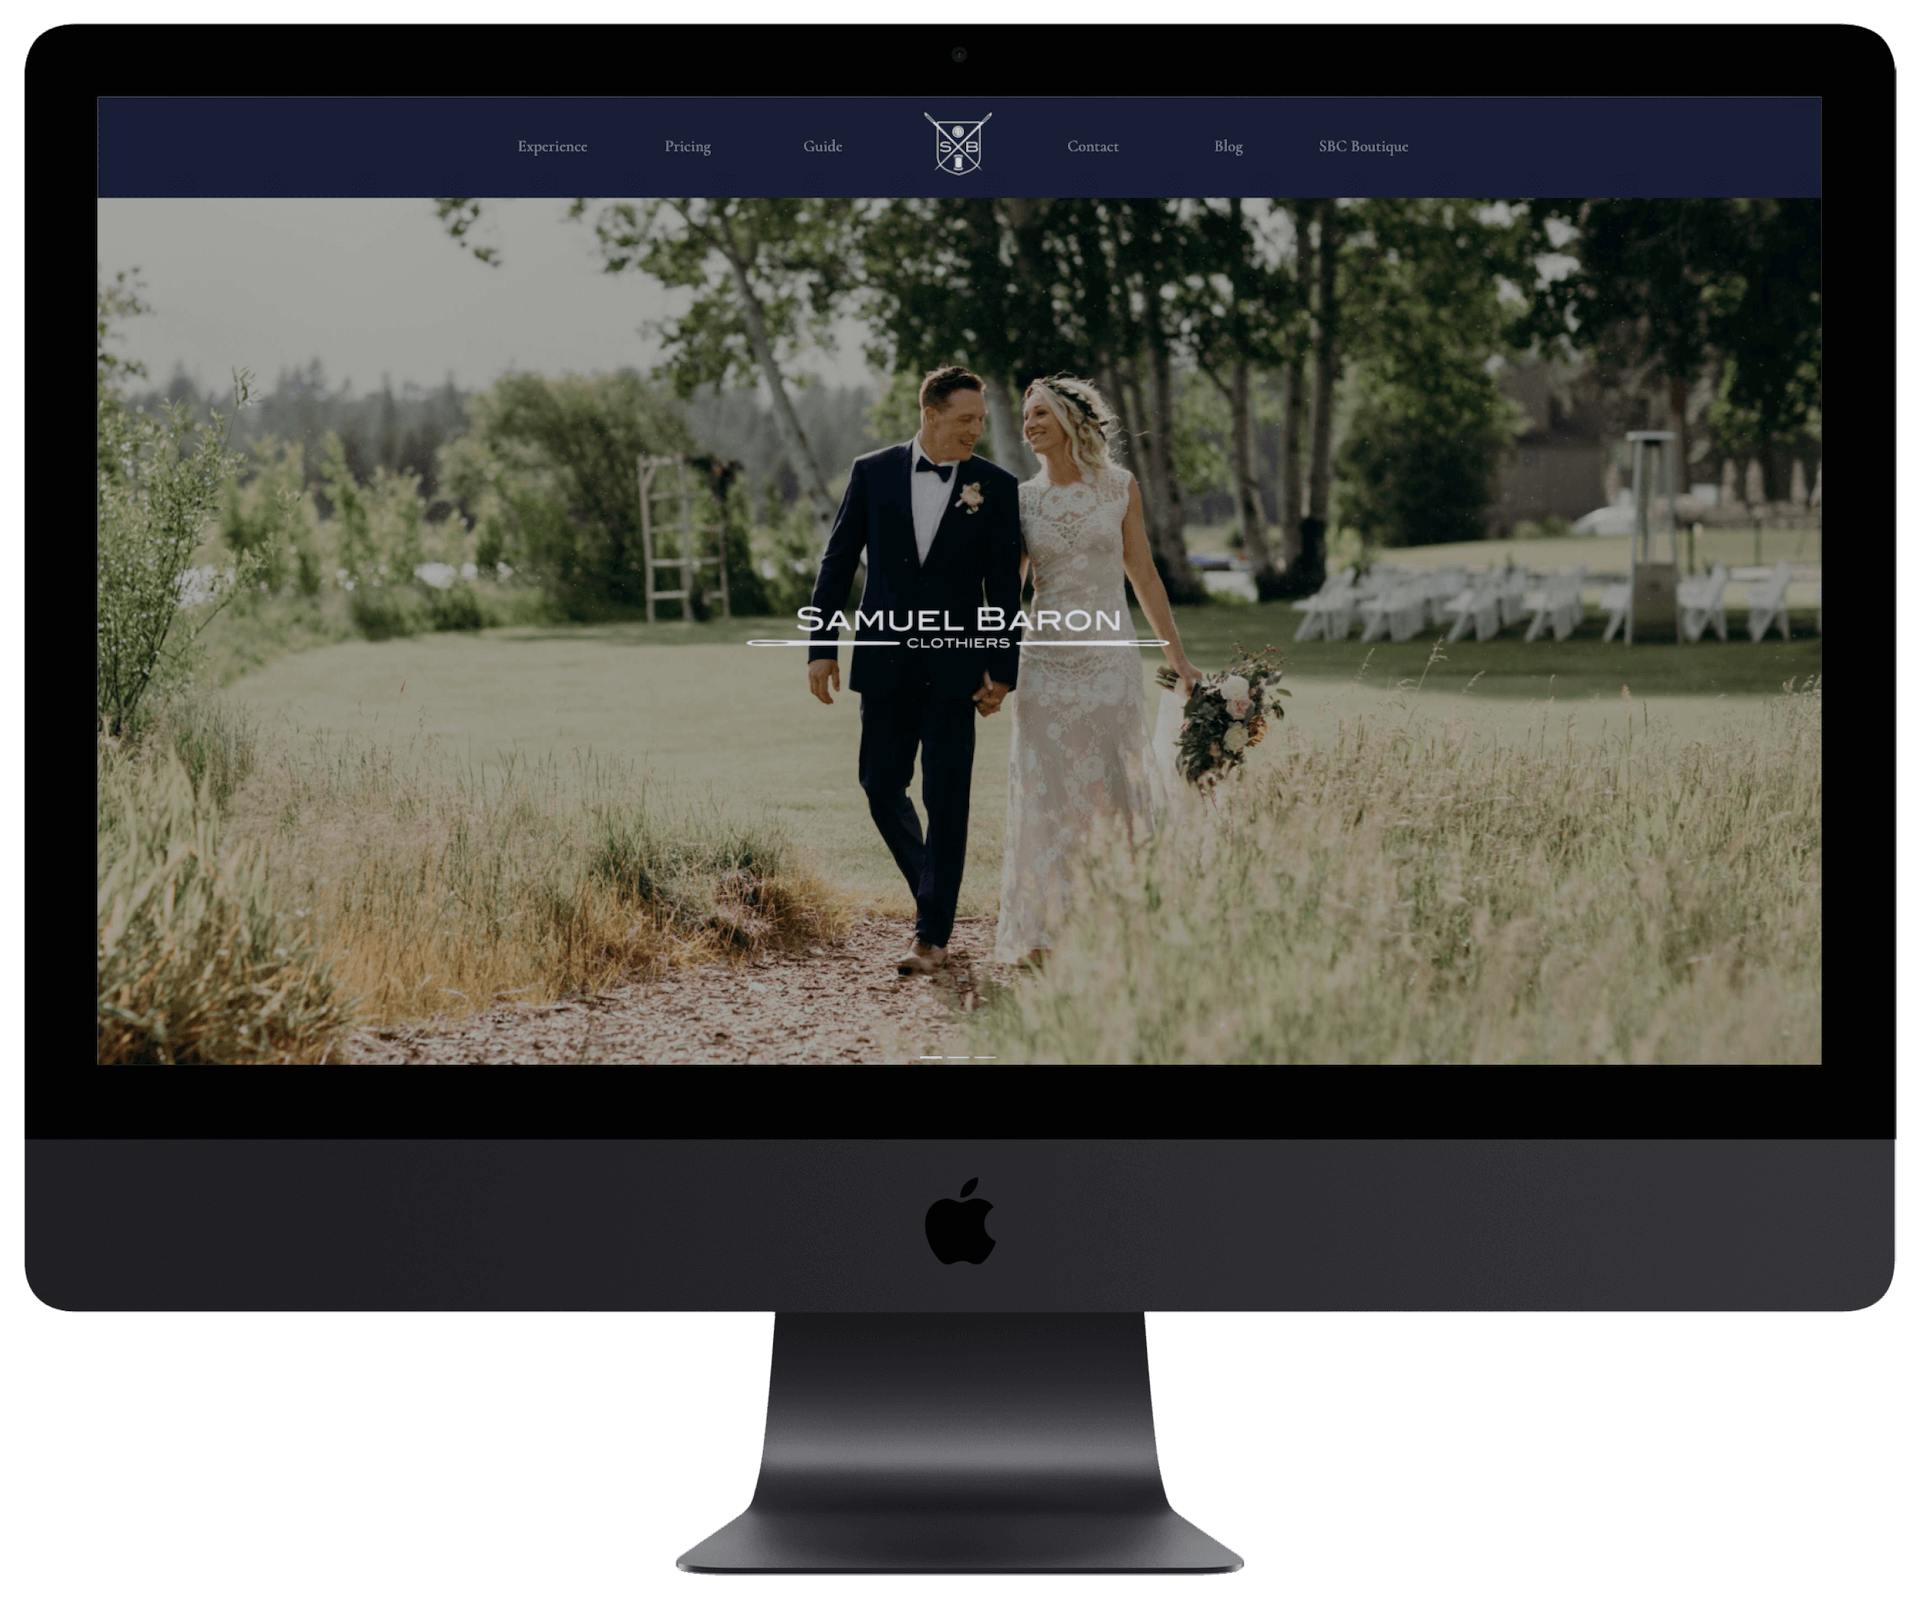 Samuel Baron Clothiers website design